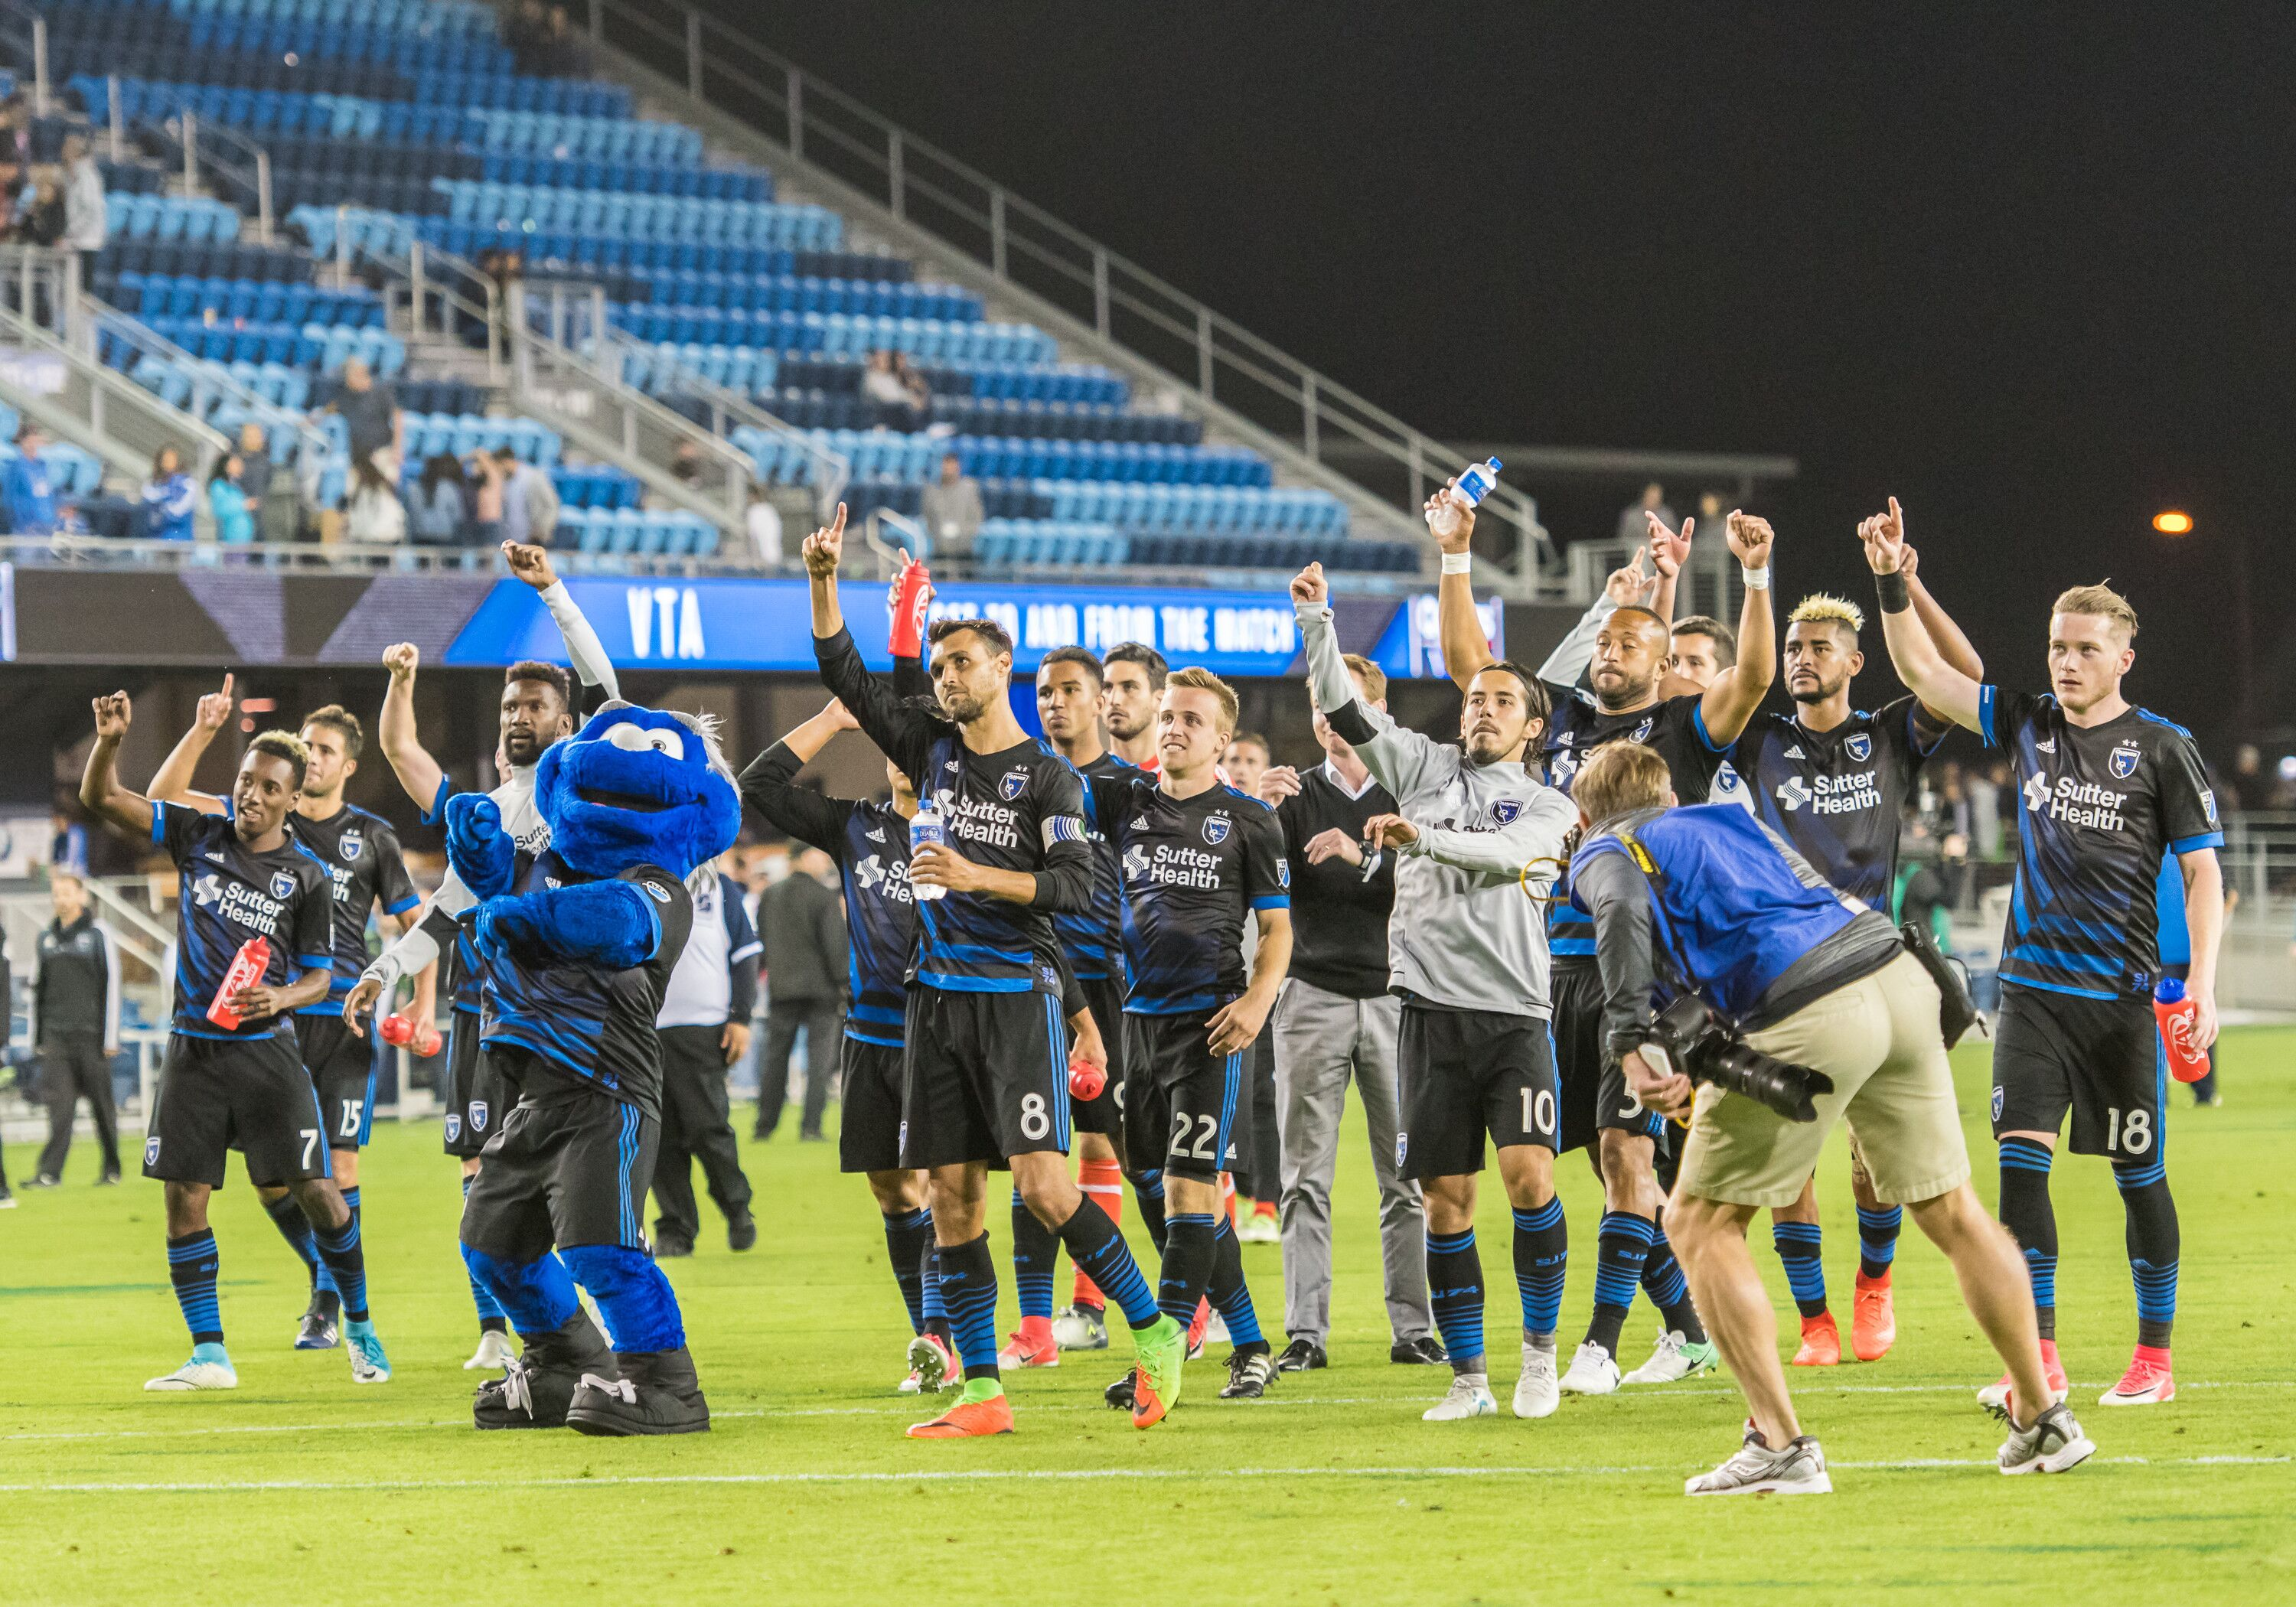 803399642-soccer-jun-28-us-open-cup-seattle-sounders-fc-at-san-jose-earthquakes.jpg